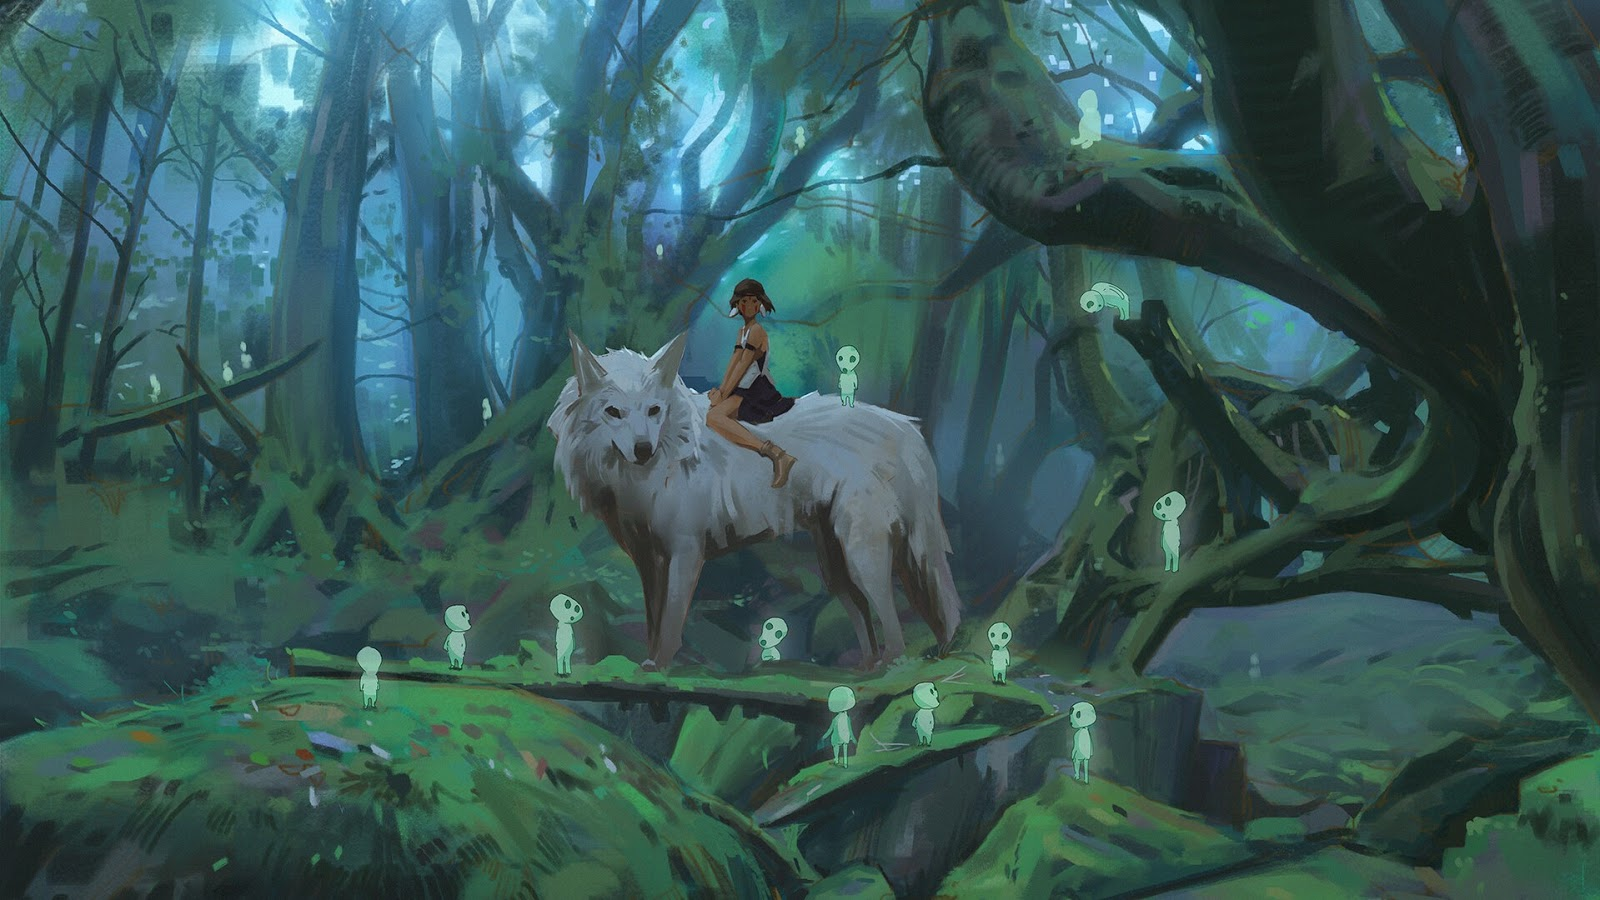 Anime Princess Mononoke Princess Mononoke 1600x900 Wallpaper Teahub Io